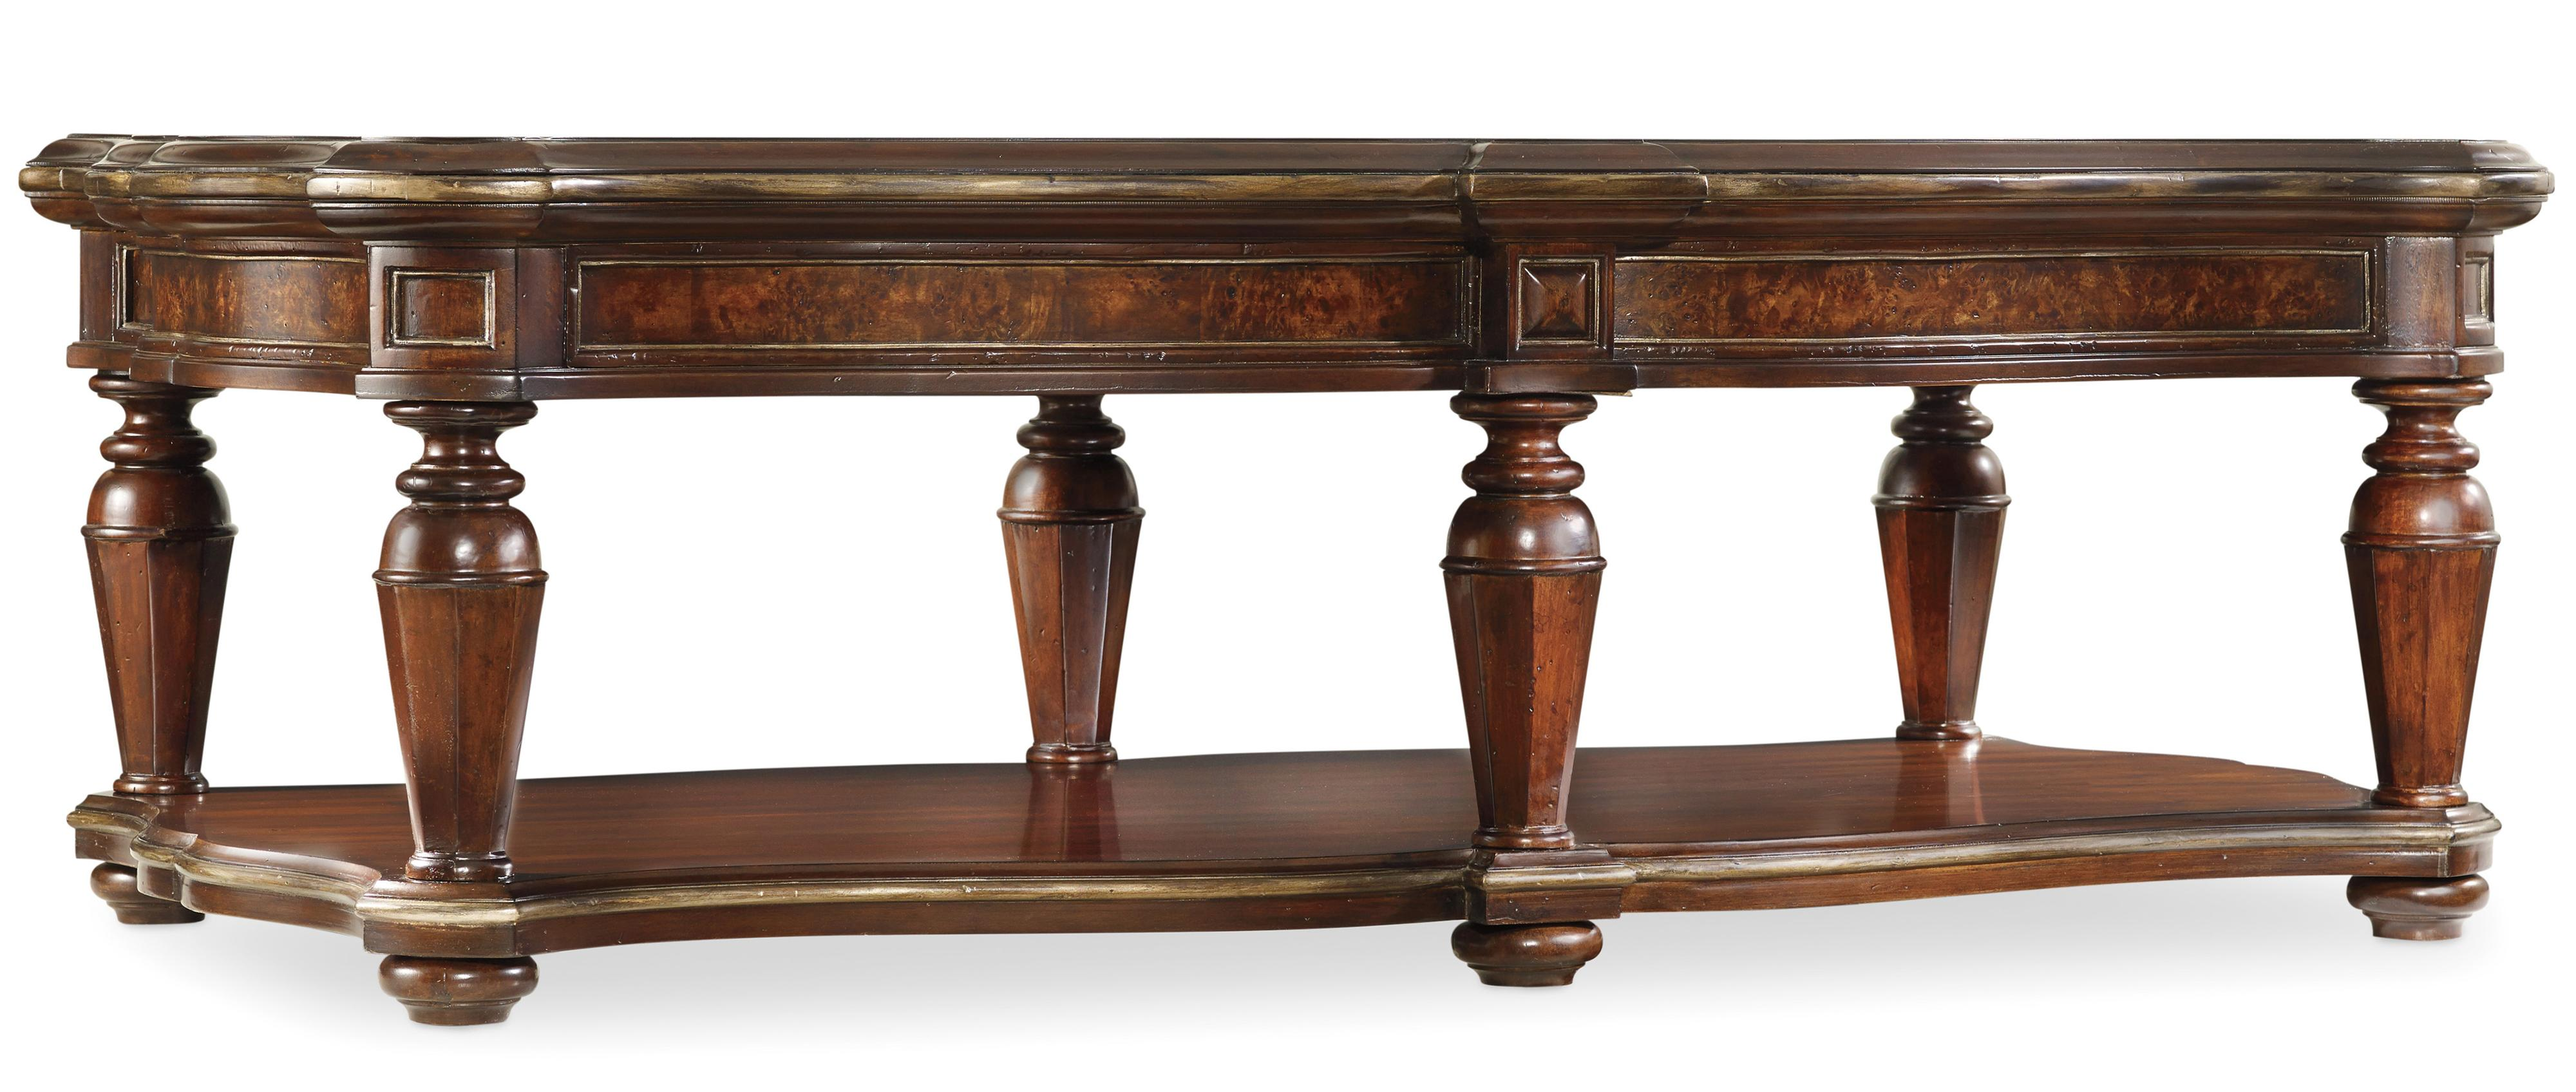 Hamilton Home Grand Palais Rectangle Cocktail Table - Item Number: 5272-80110